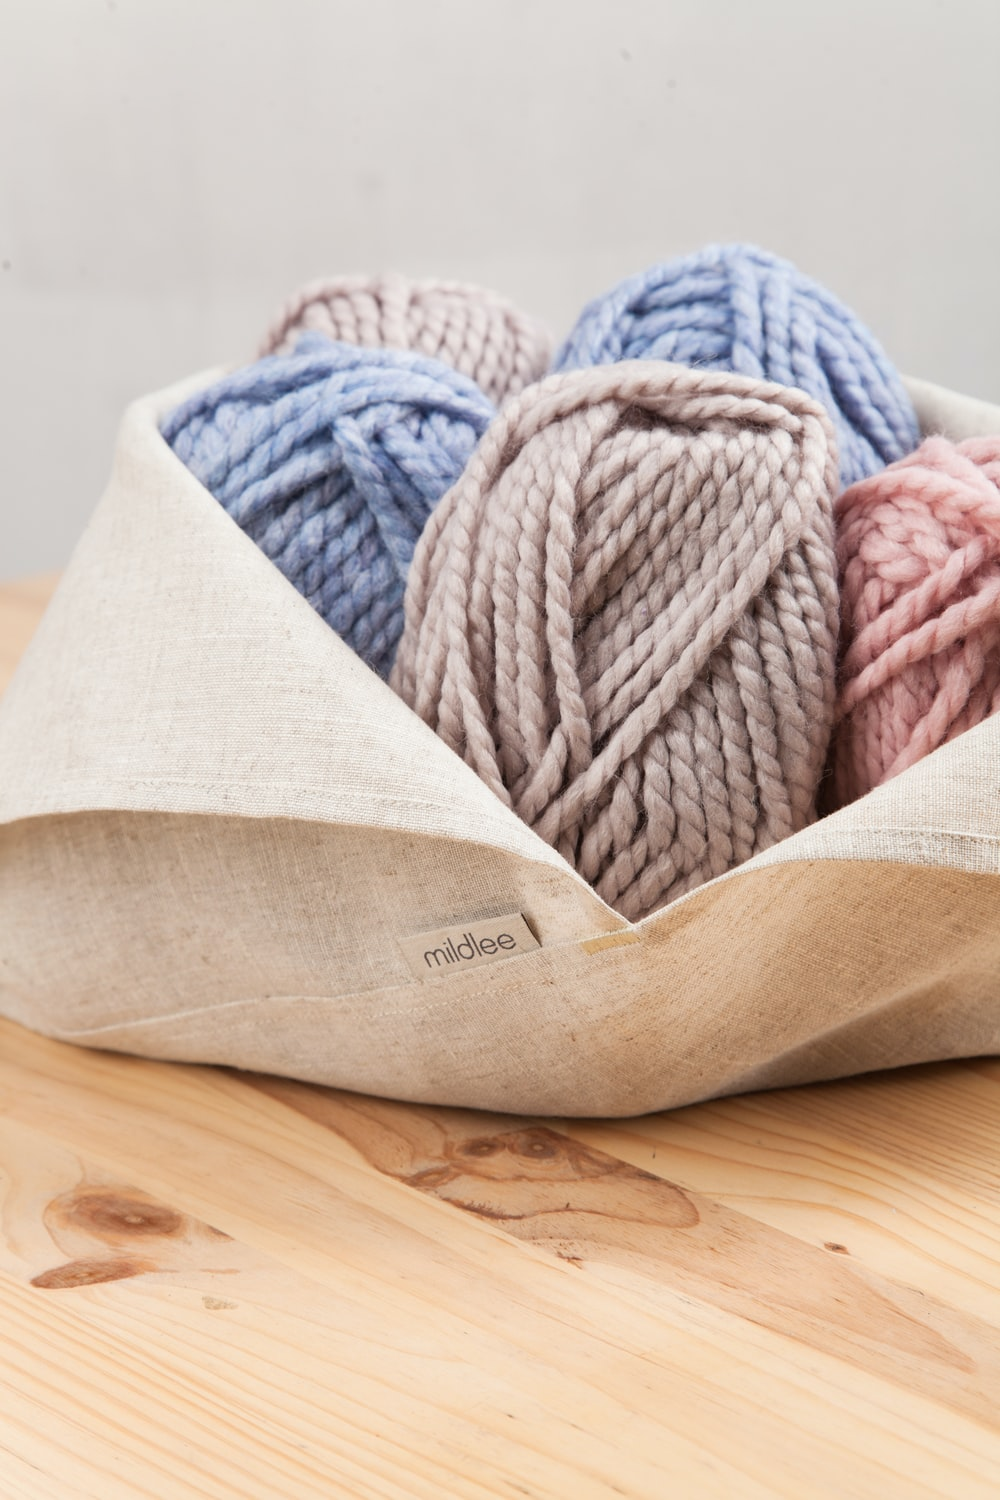 blue and white yarn on brown wooden table